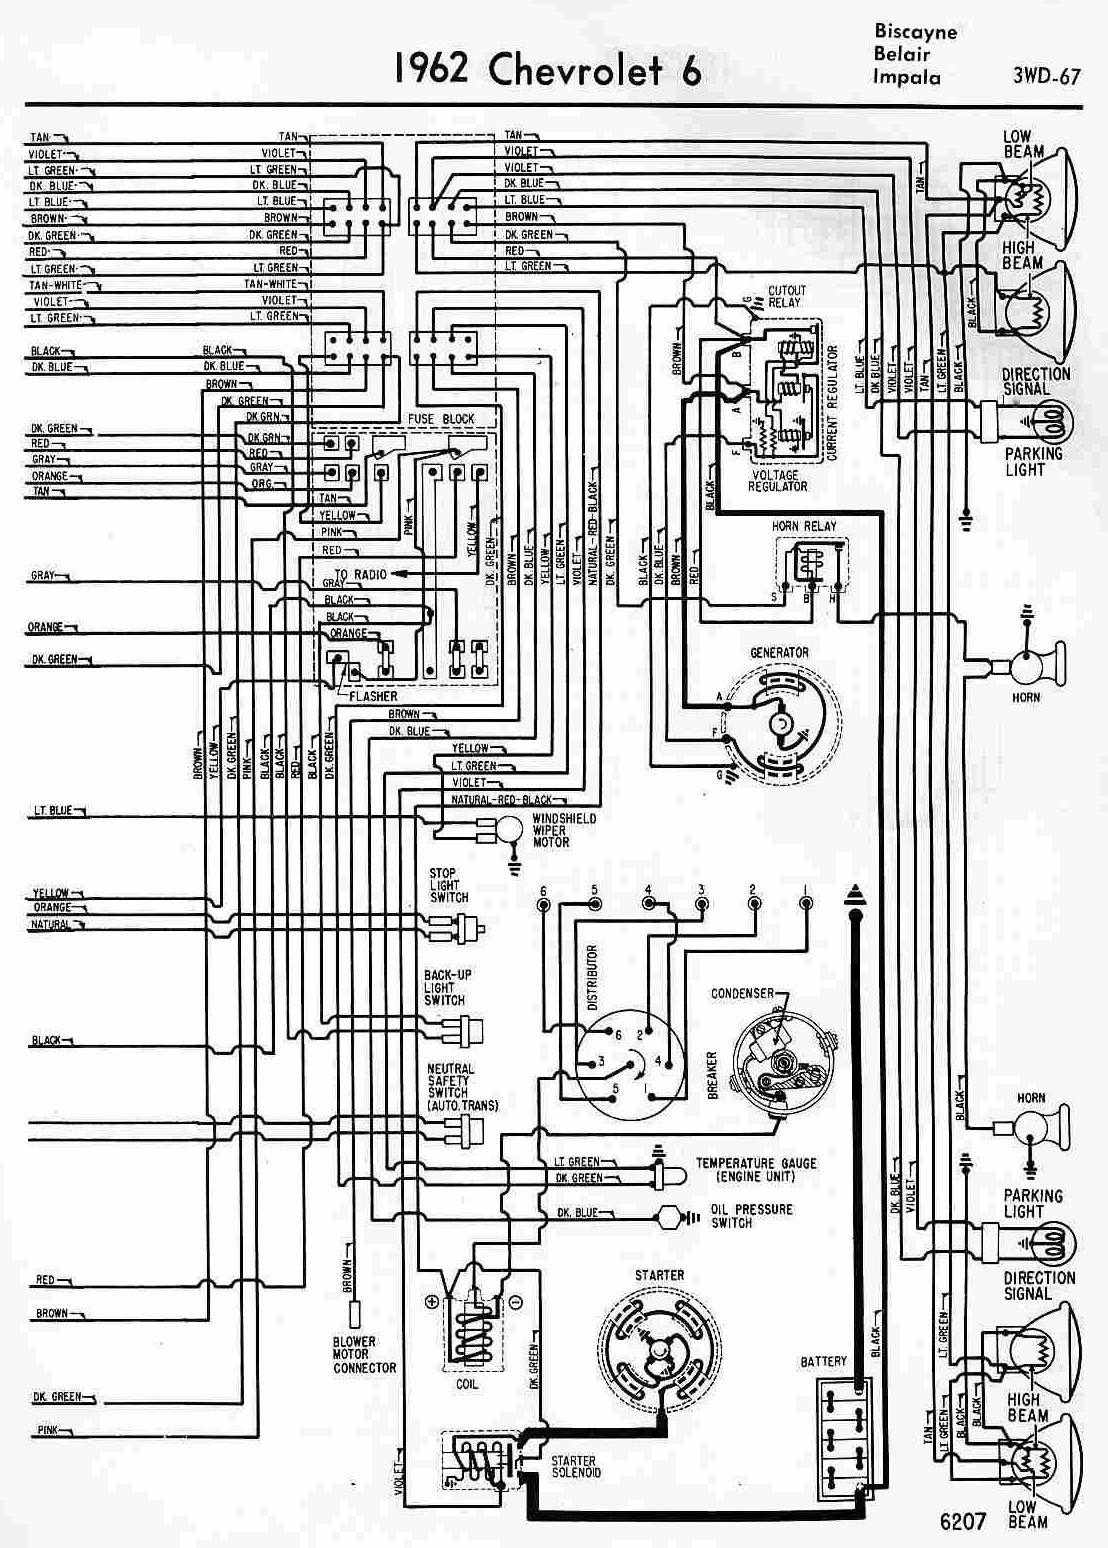 Funky Hq Holden Wiring Diagram Component - Electrical Diagram Ideas ...